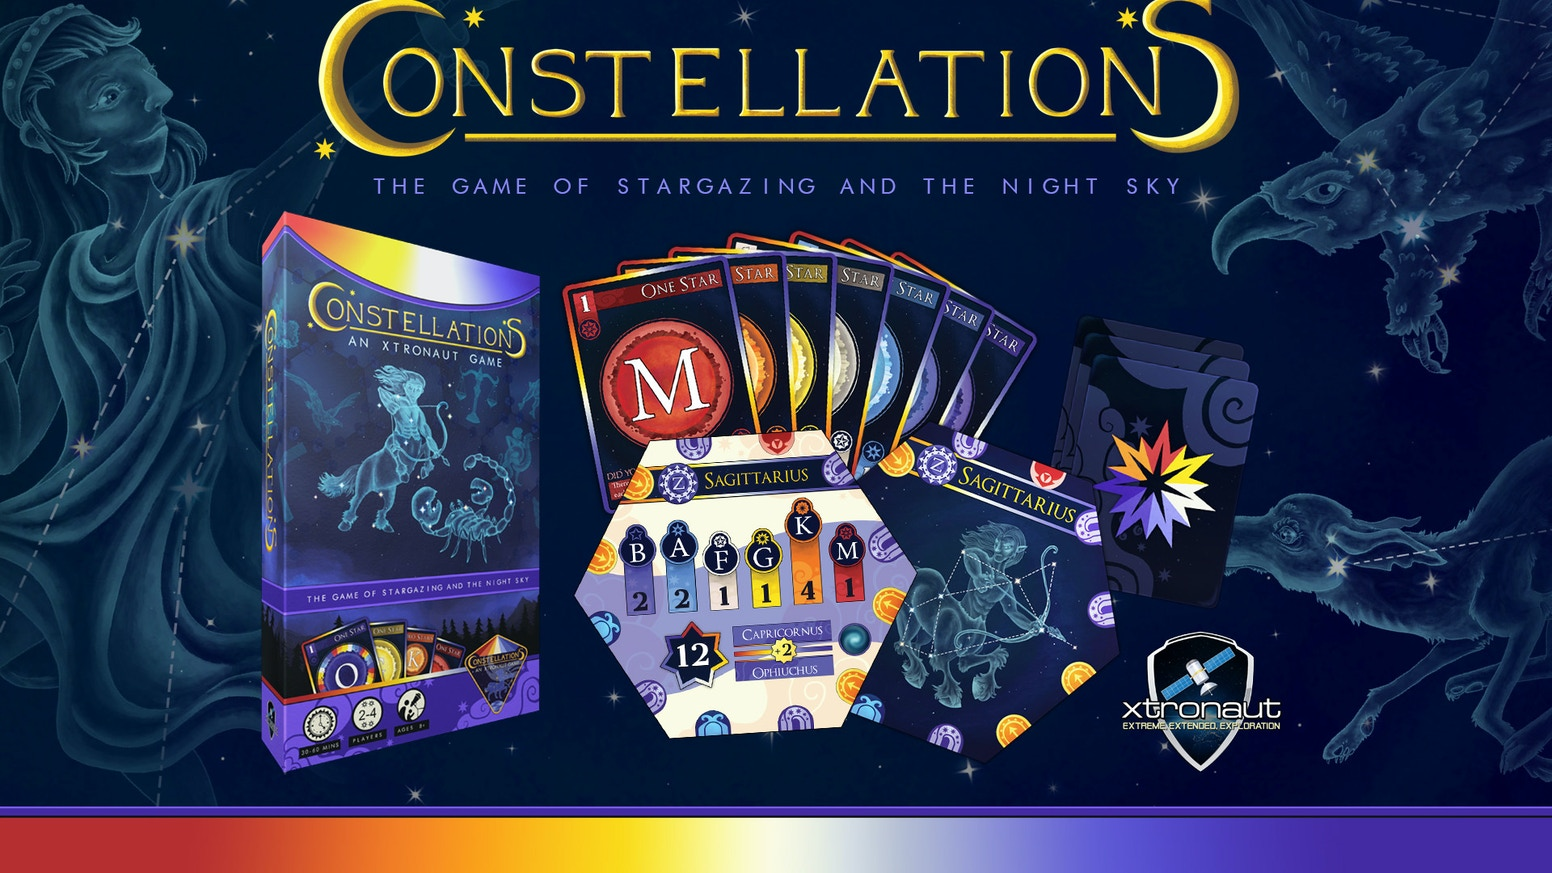 constellations the game of stargazing and the night sky by dante